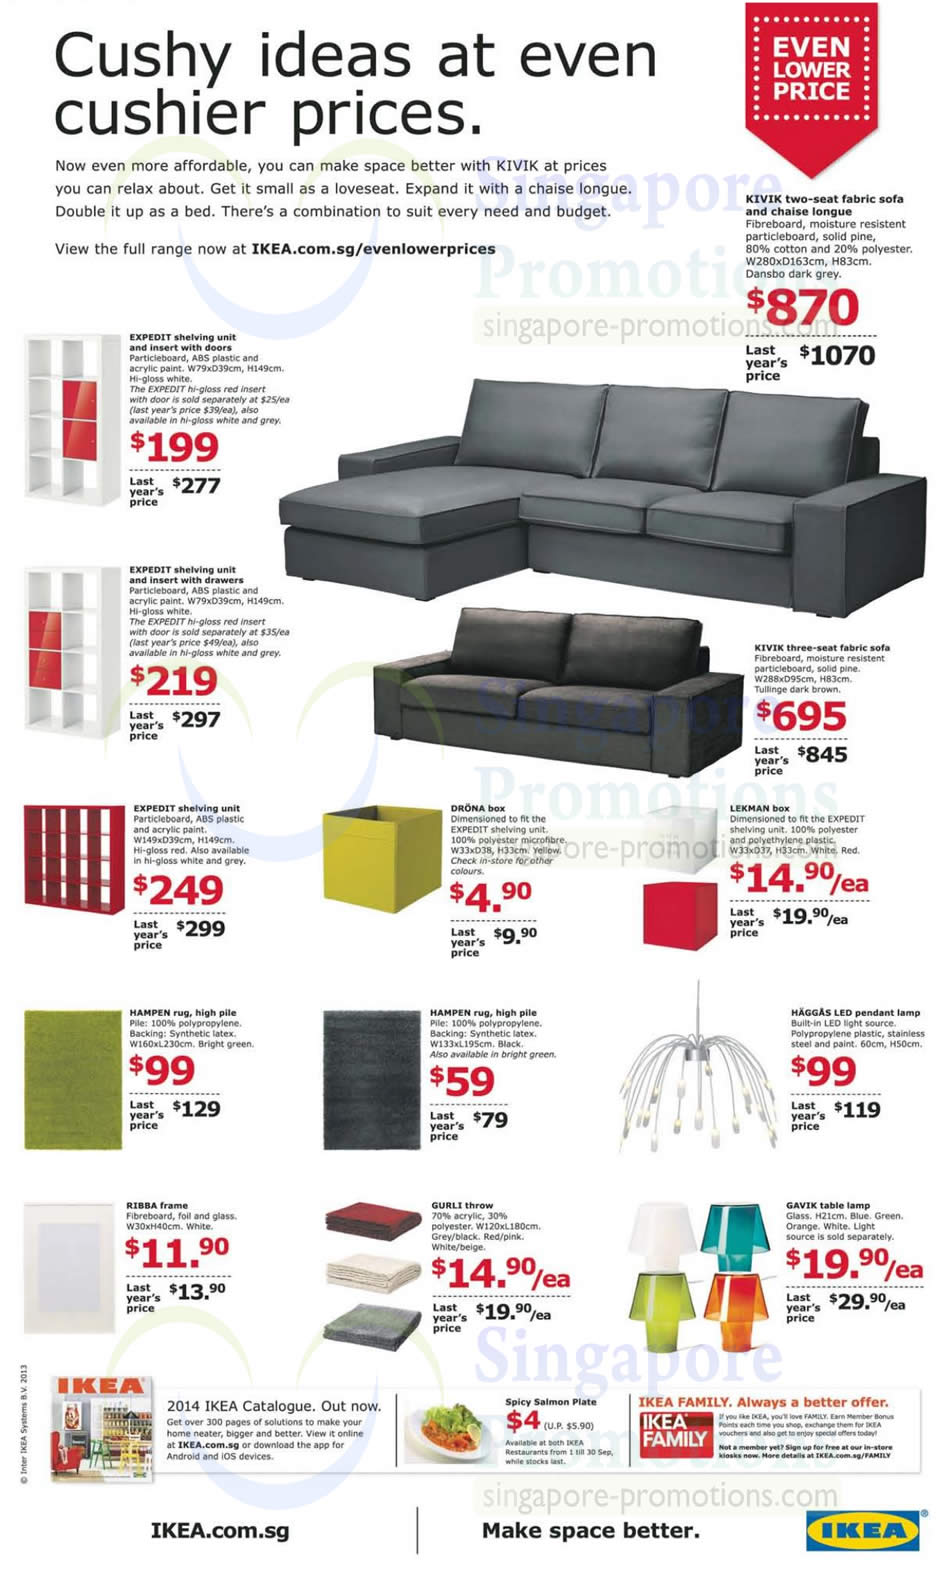 Even Lower Prices Items 187 Ikea New 2014 Catalogue Now